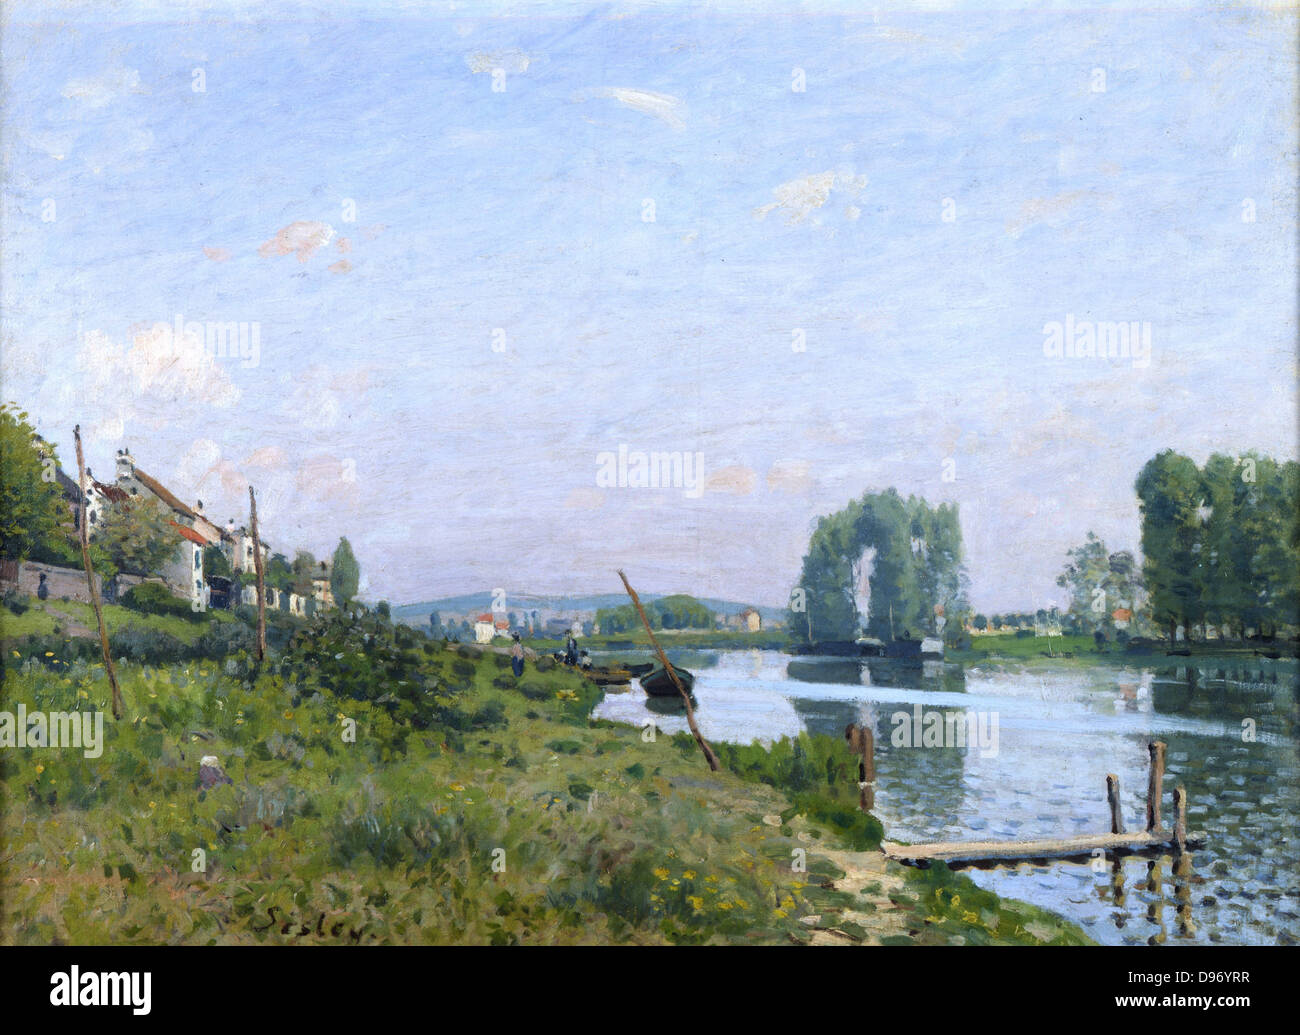 L'Ile St Denis' 1872: Alfred Sisley (1839-1899) French painter. Oil on canvas. - Stock Image